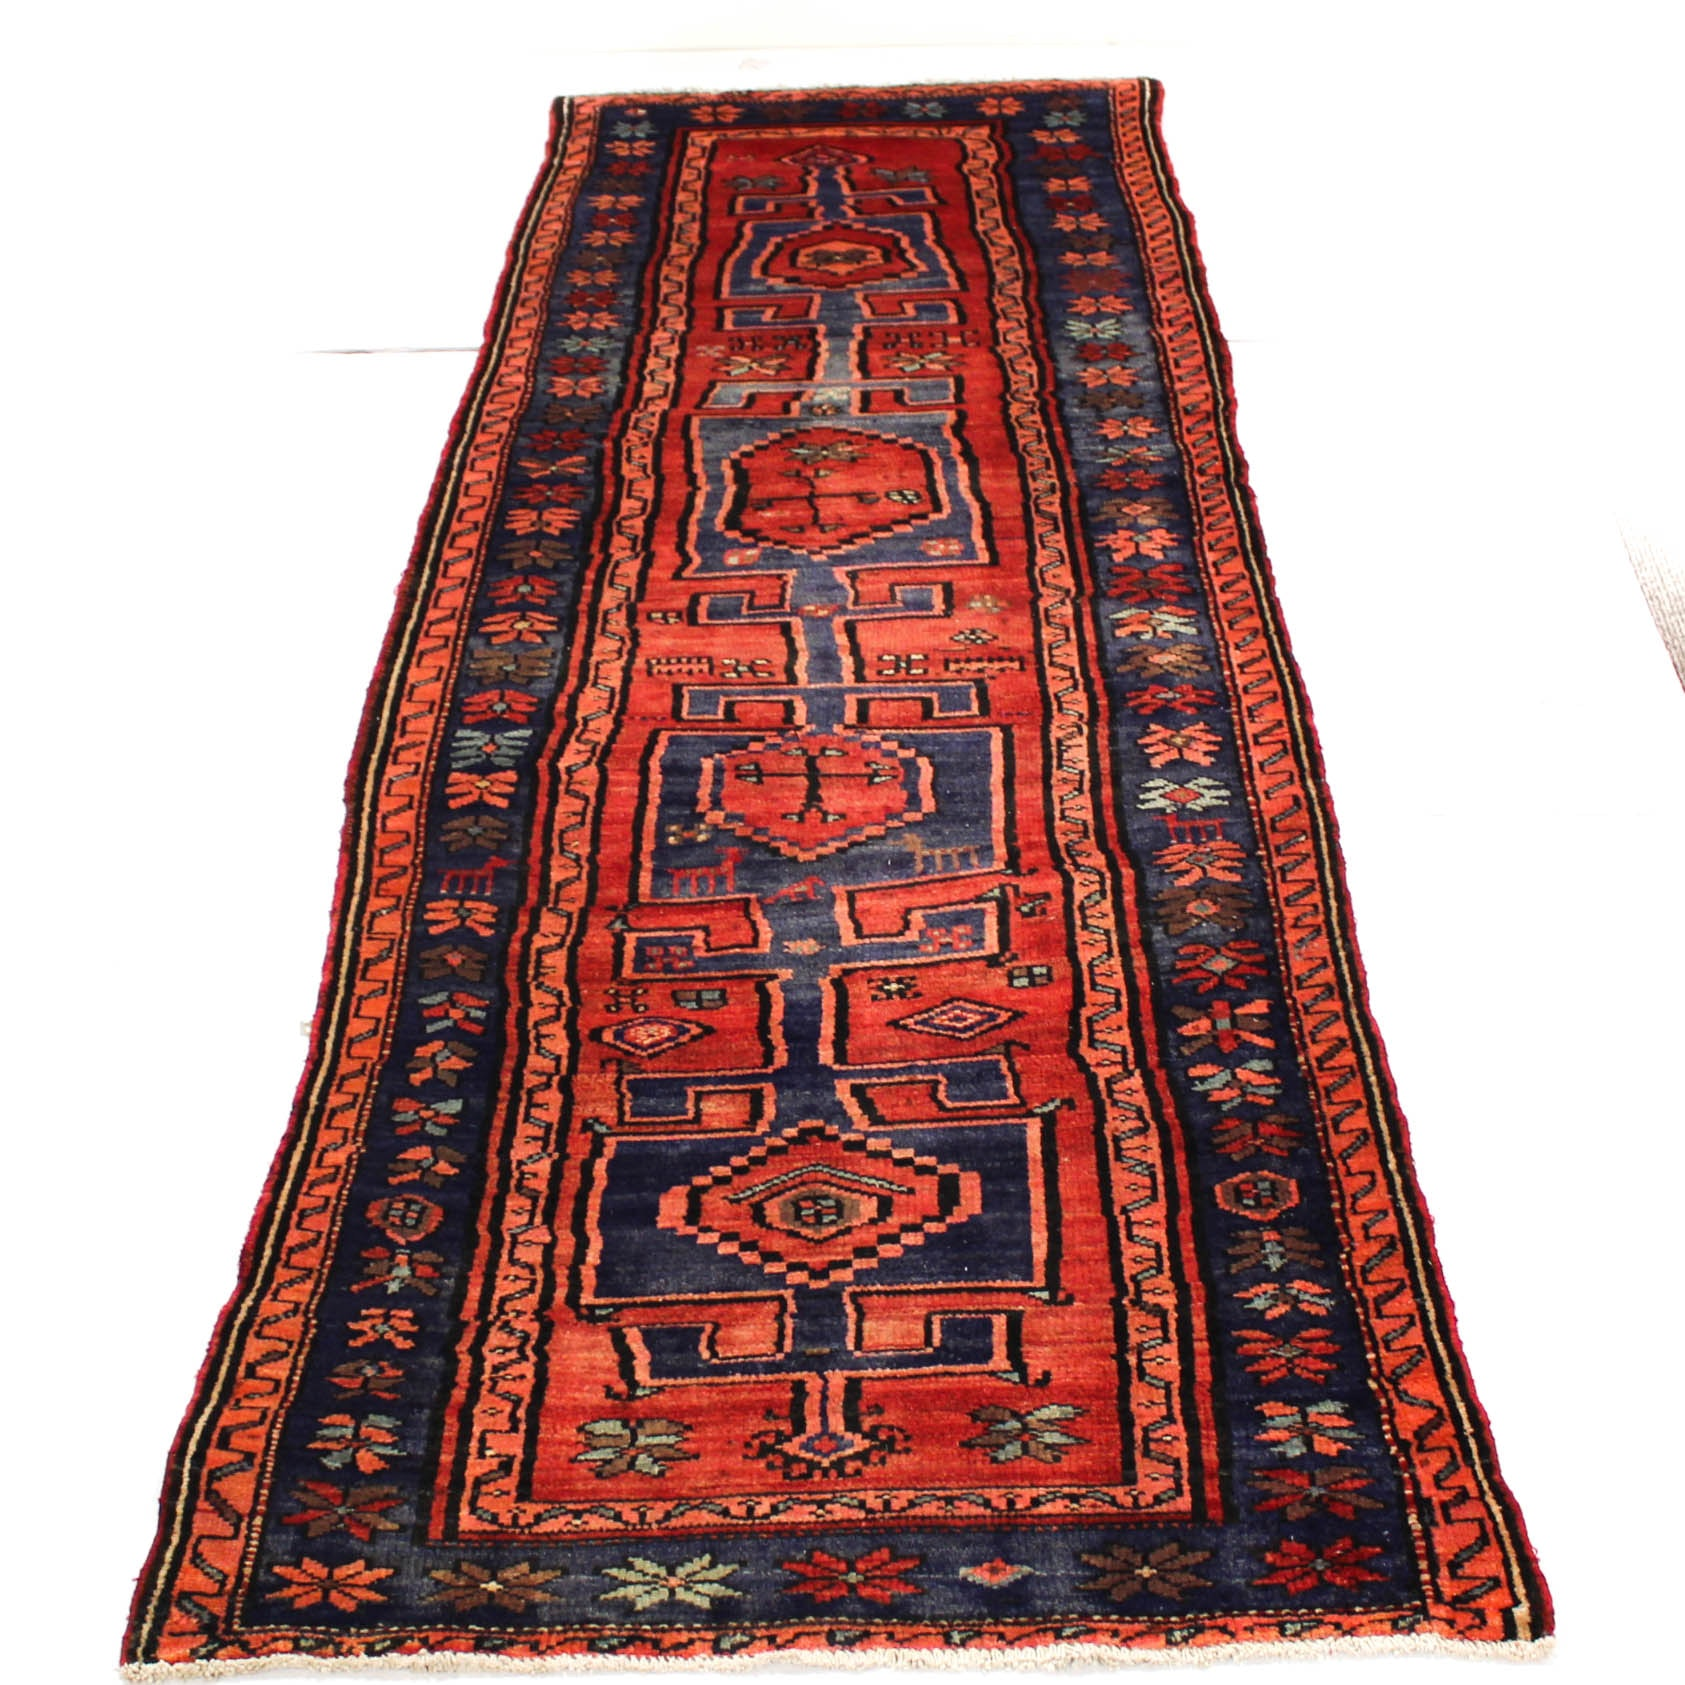 3'8 x 11'3 Semi-Antique Hand-Knotted Persian Northwest Pictorial Carpet Runner